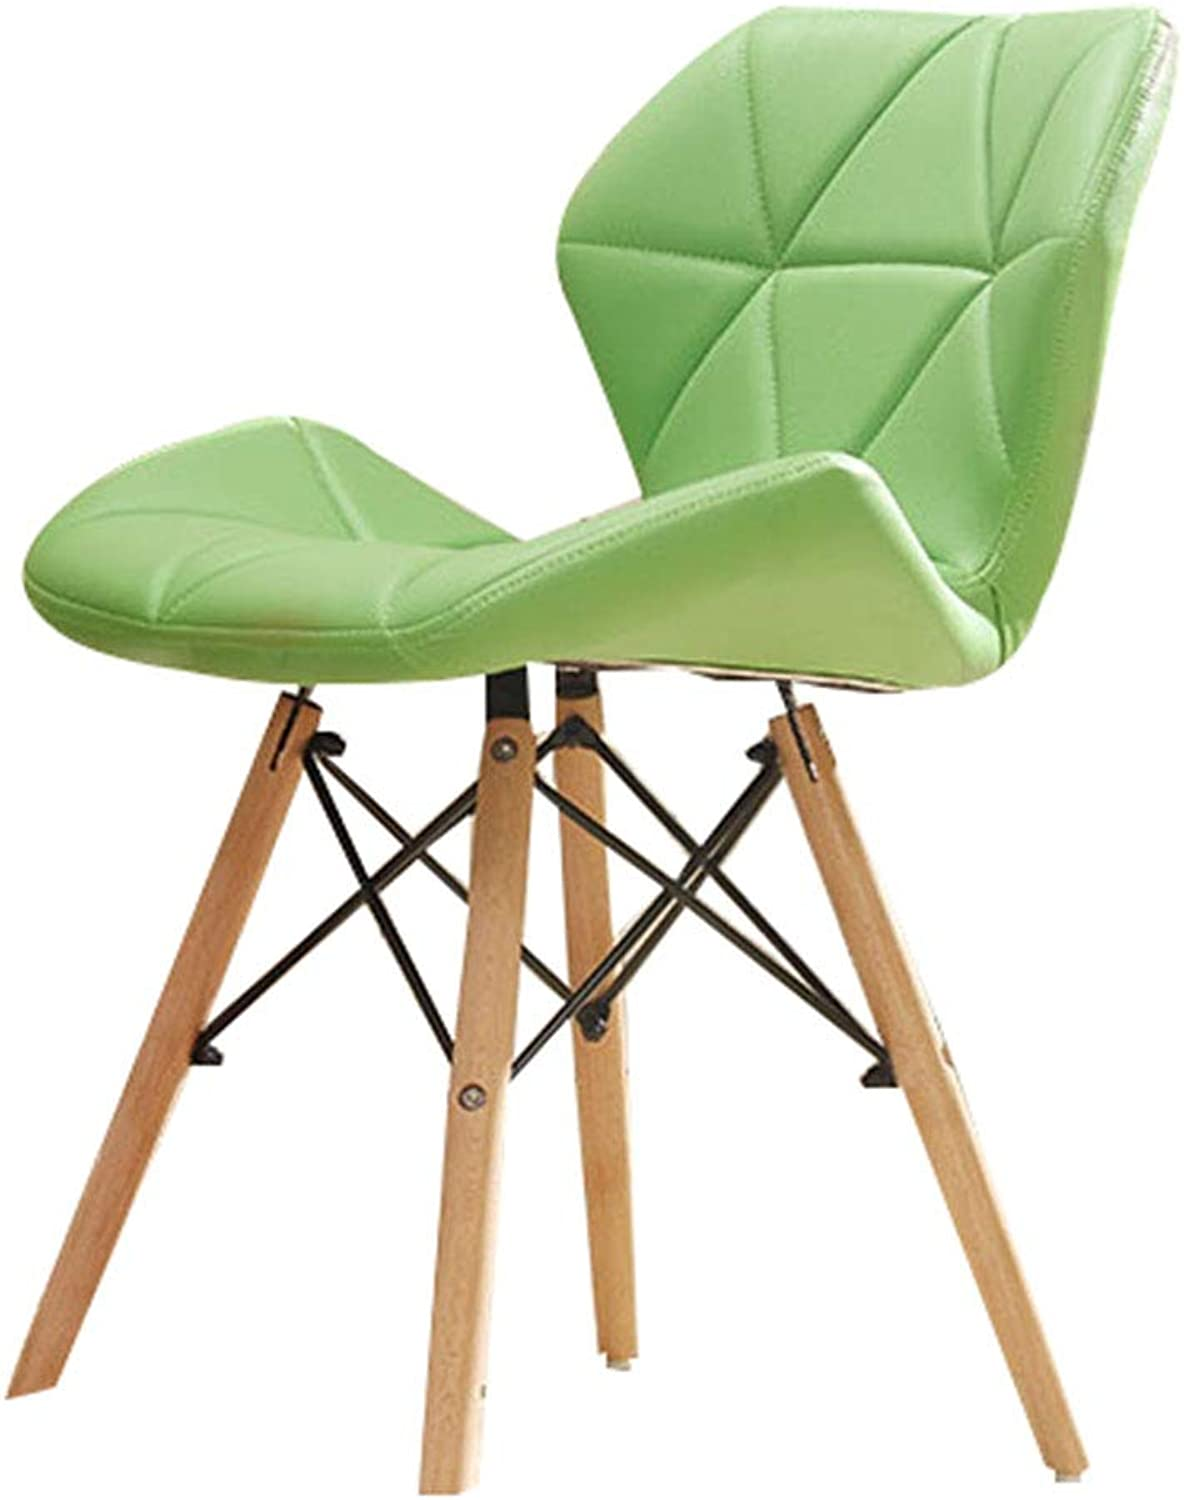 HQCC Chair Sponge Seat Solid Wood Stool Legs Soft Bouncy Assembly Retro bar Stool,high Stool (color   Green, Size   48x38x72cm)